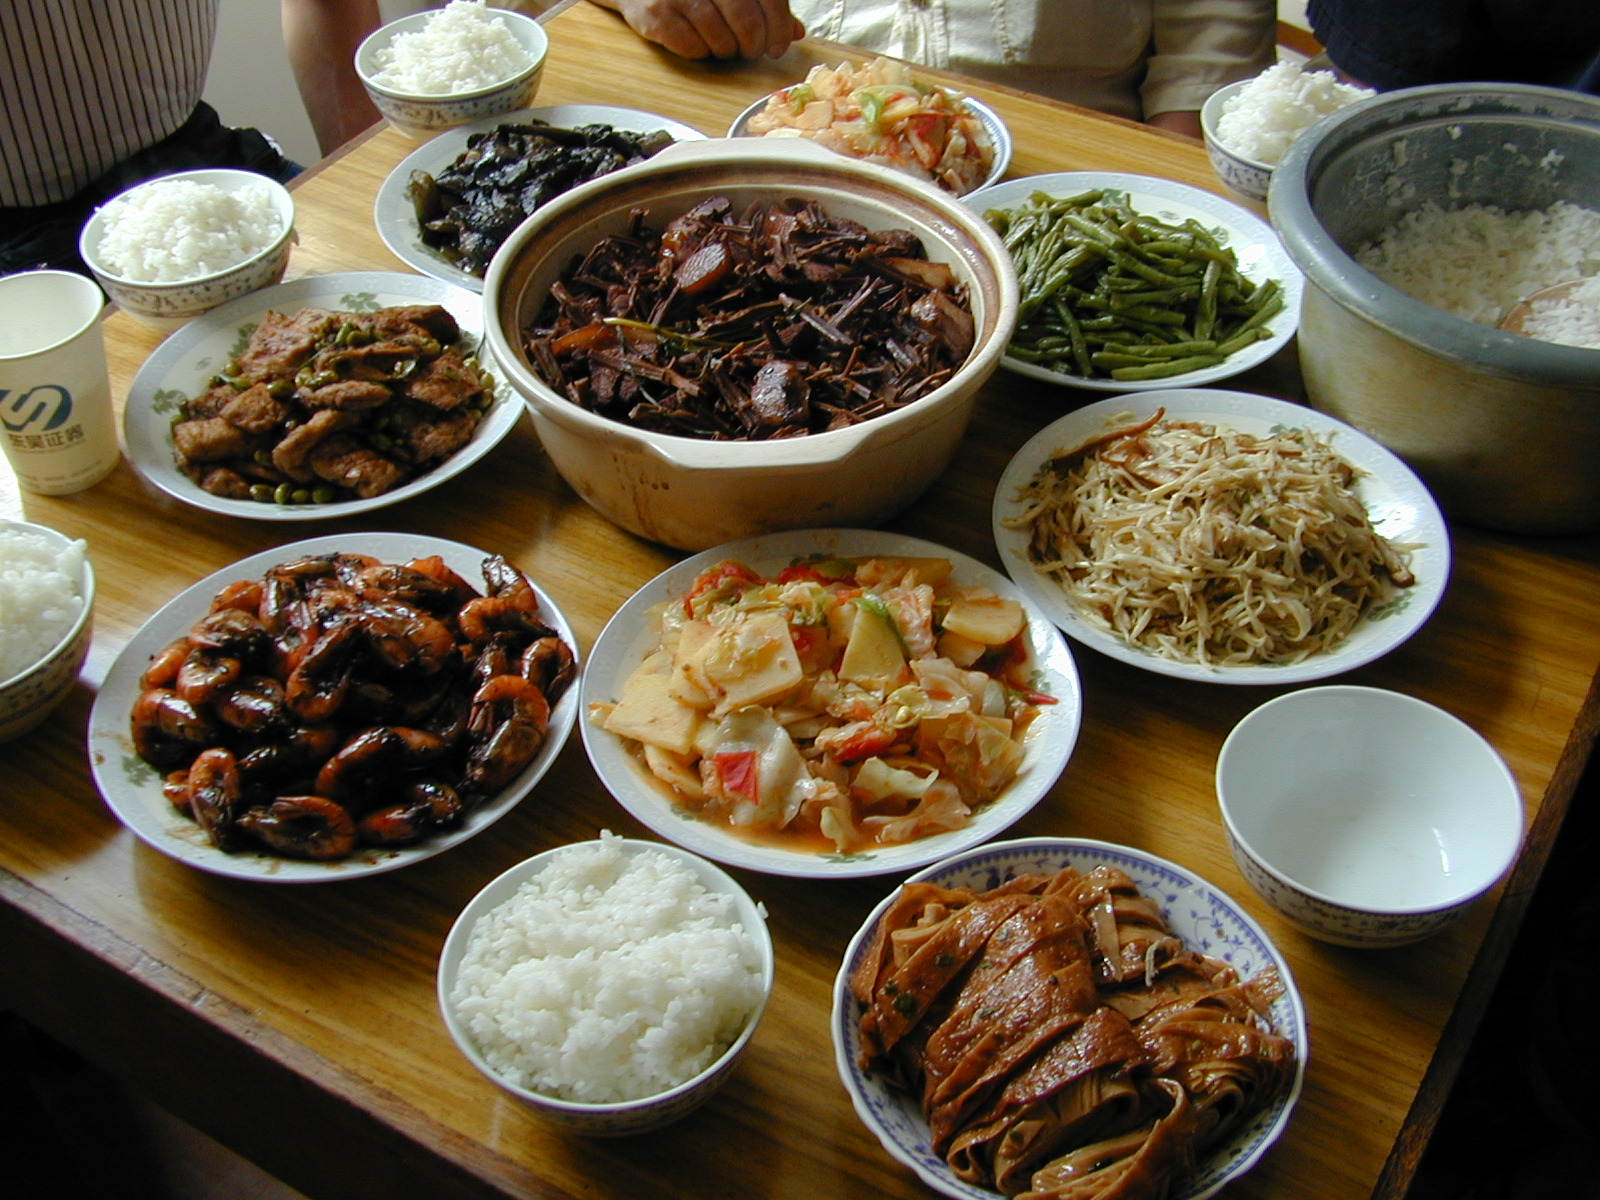 File:Chinese meal.jpg  Wikipedia